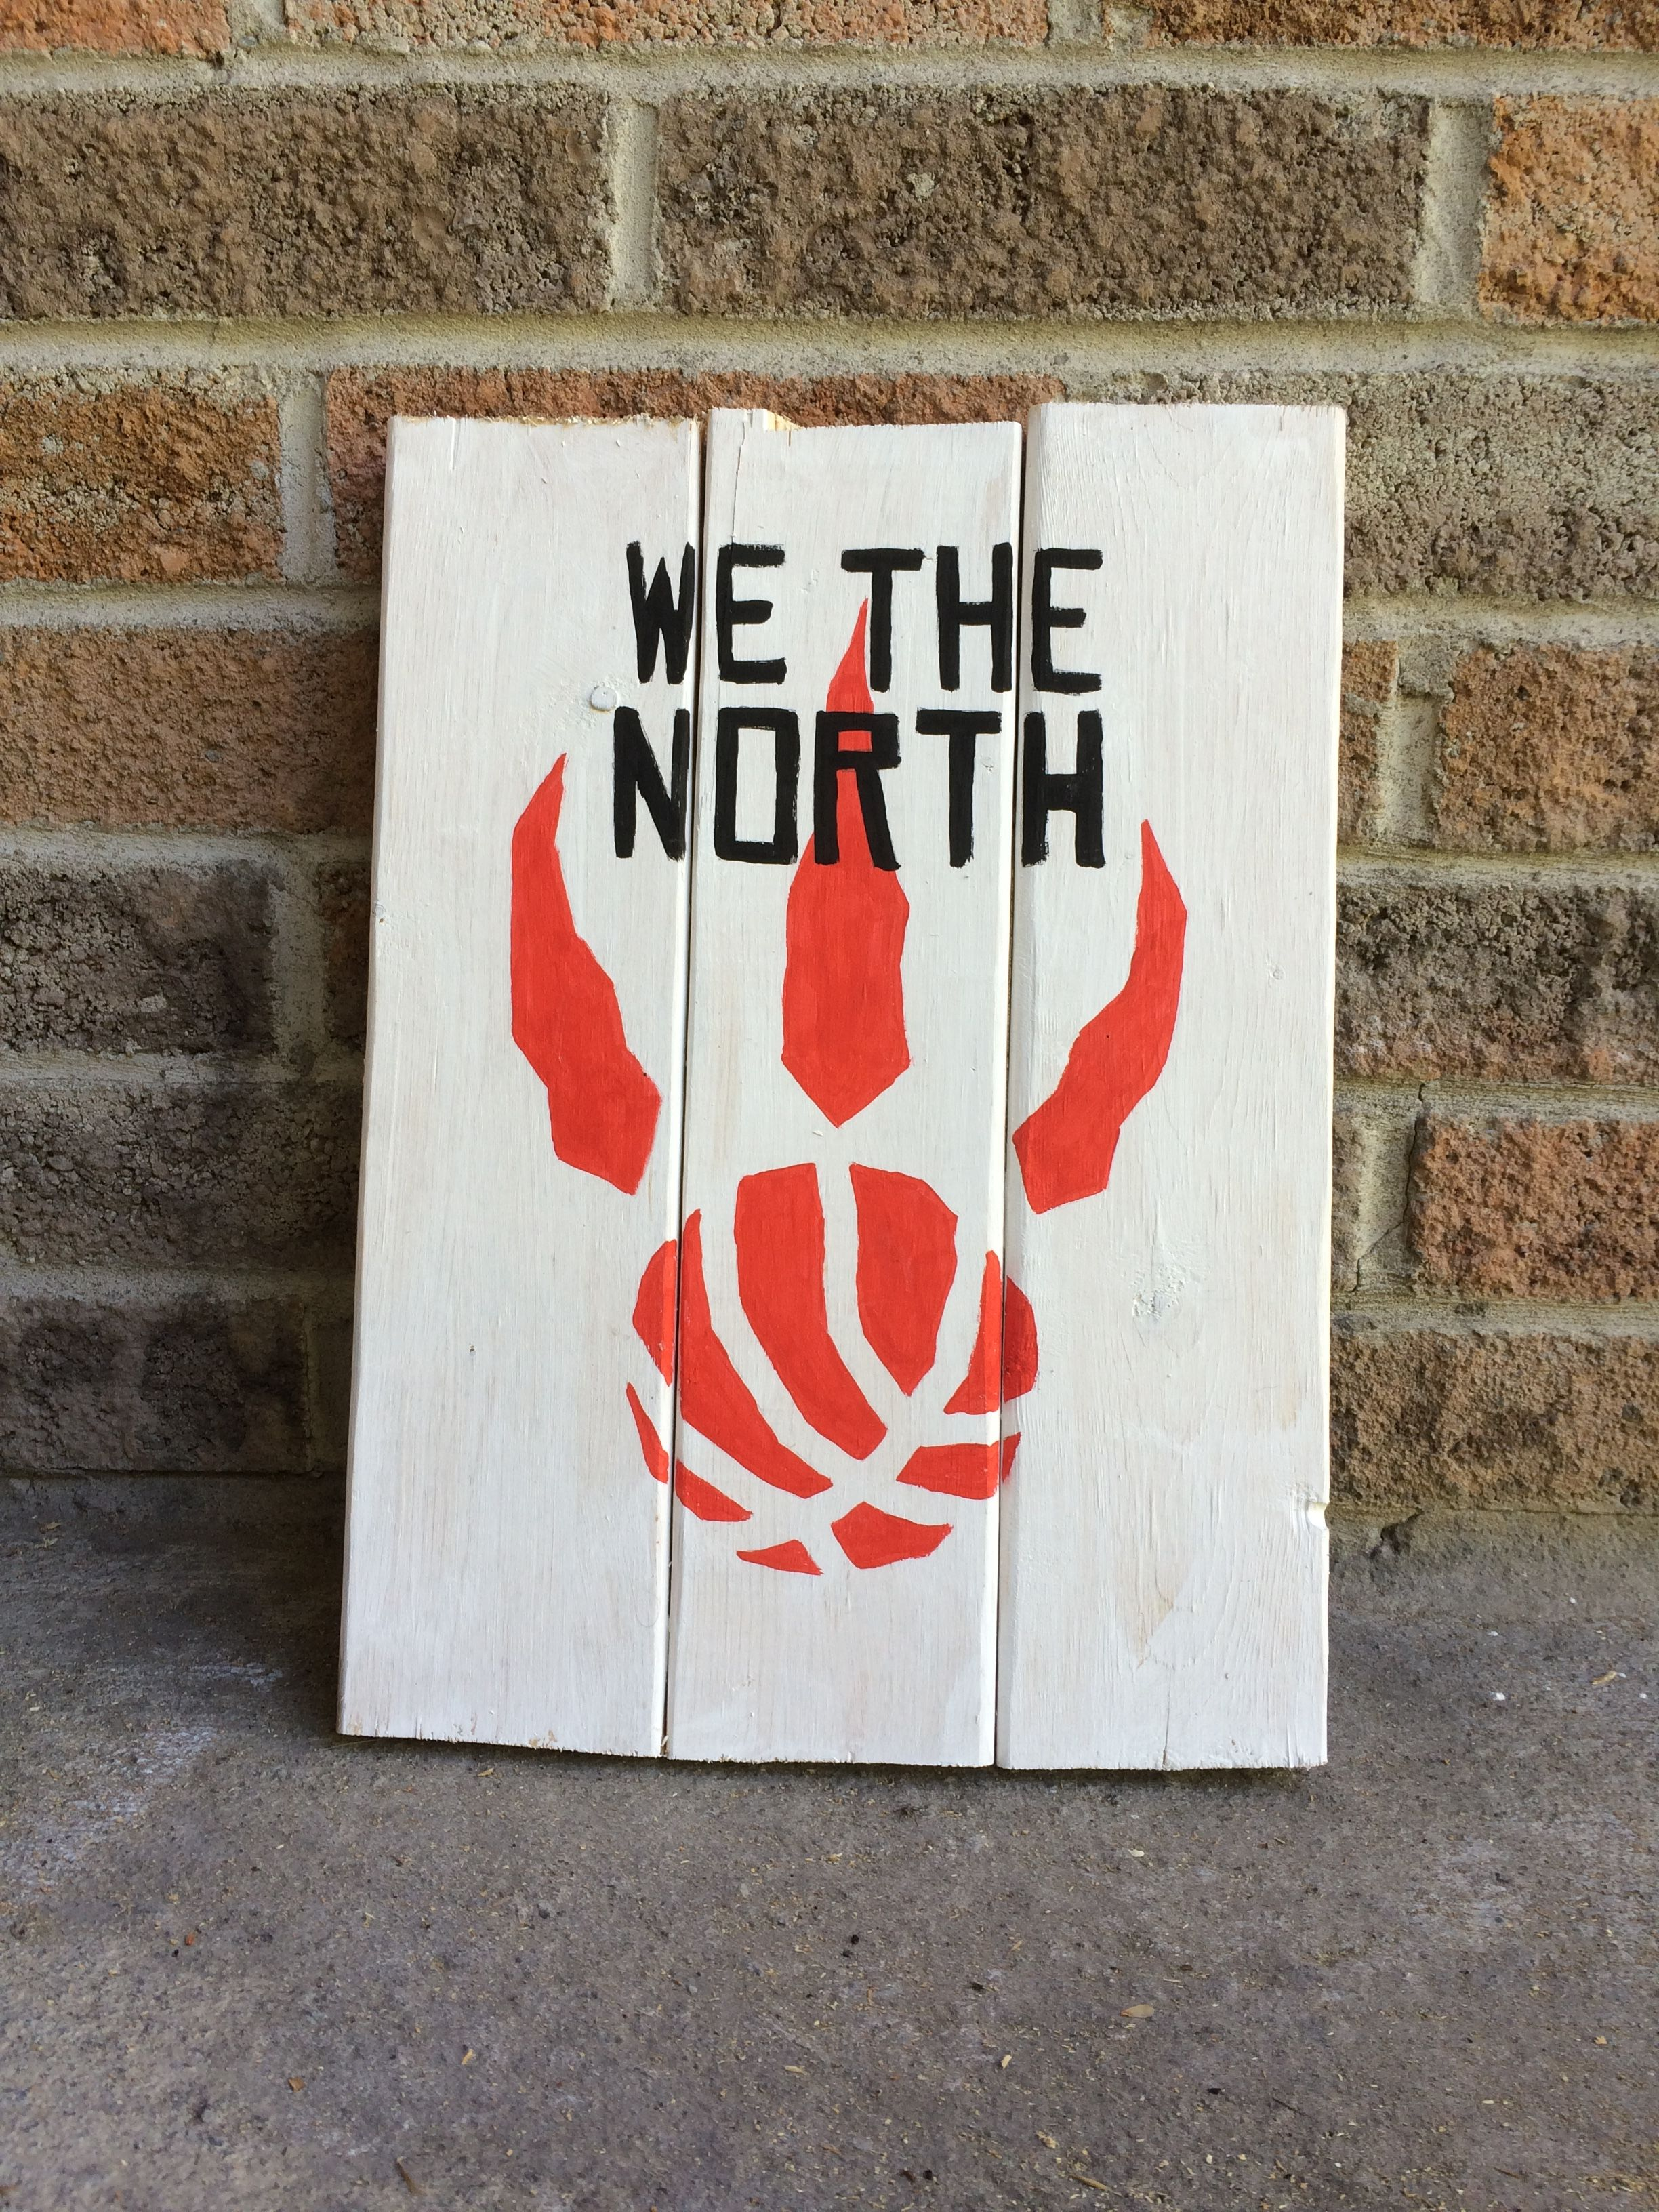 653aa9ac1a3 Toronto Raptors Basketball Logo We the north painted wood sign for man cave